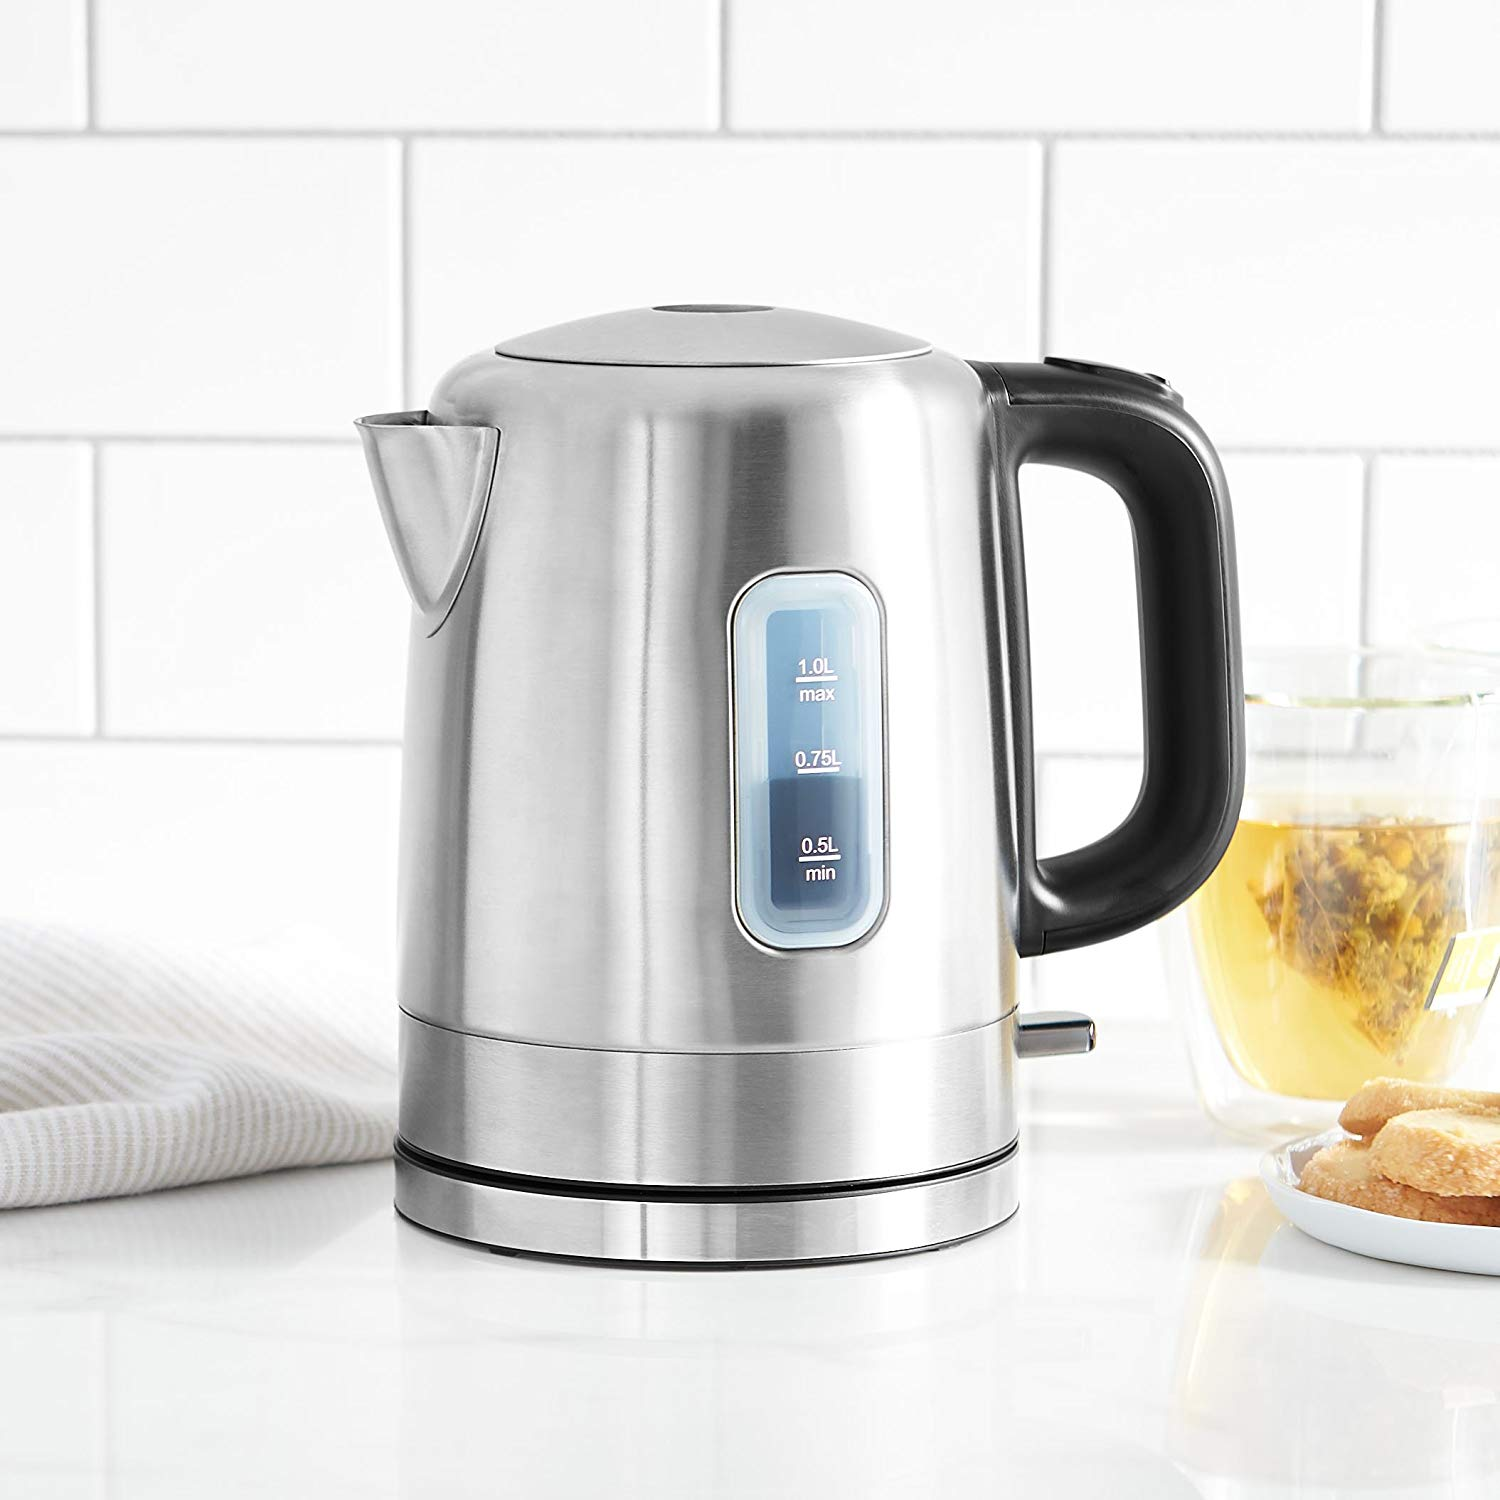 TOP 12 SUPER GLASS ELECTRIC KETTLE IN 2020